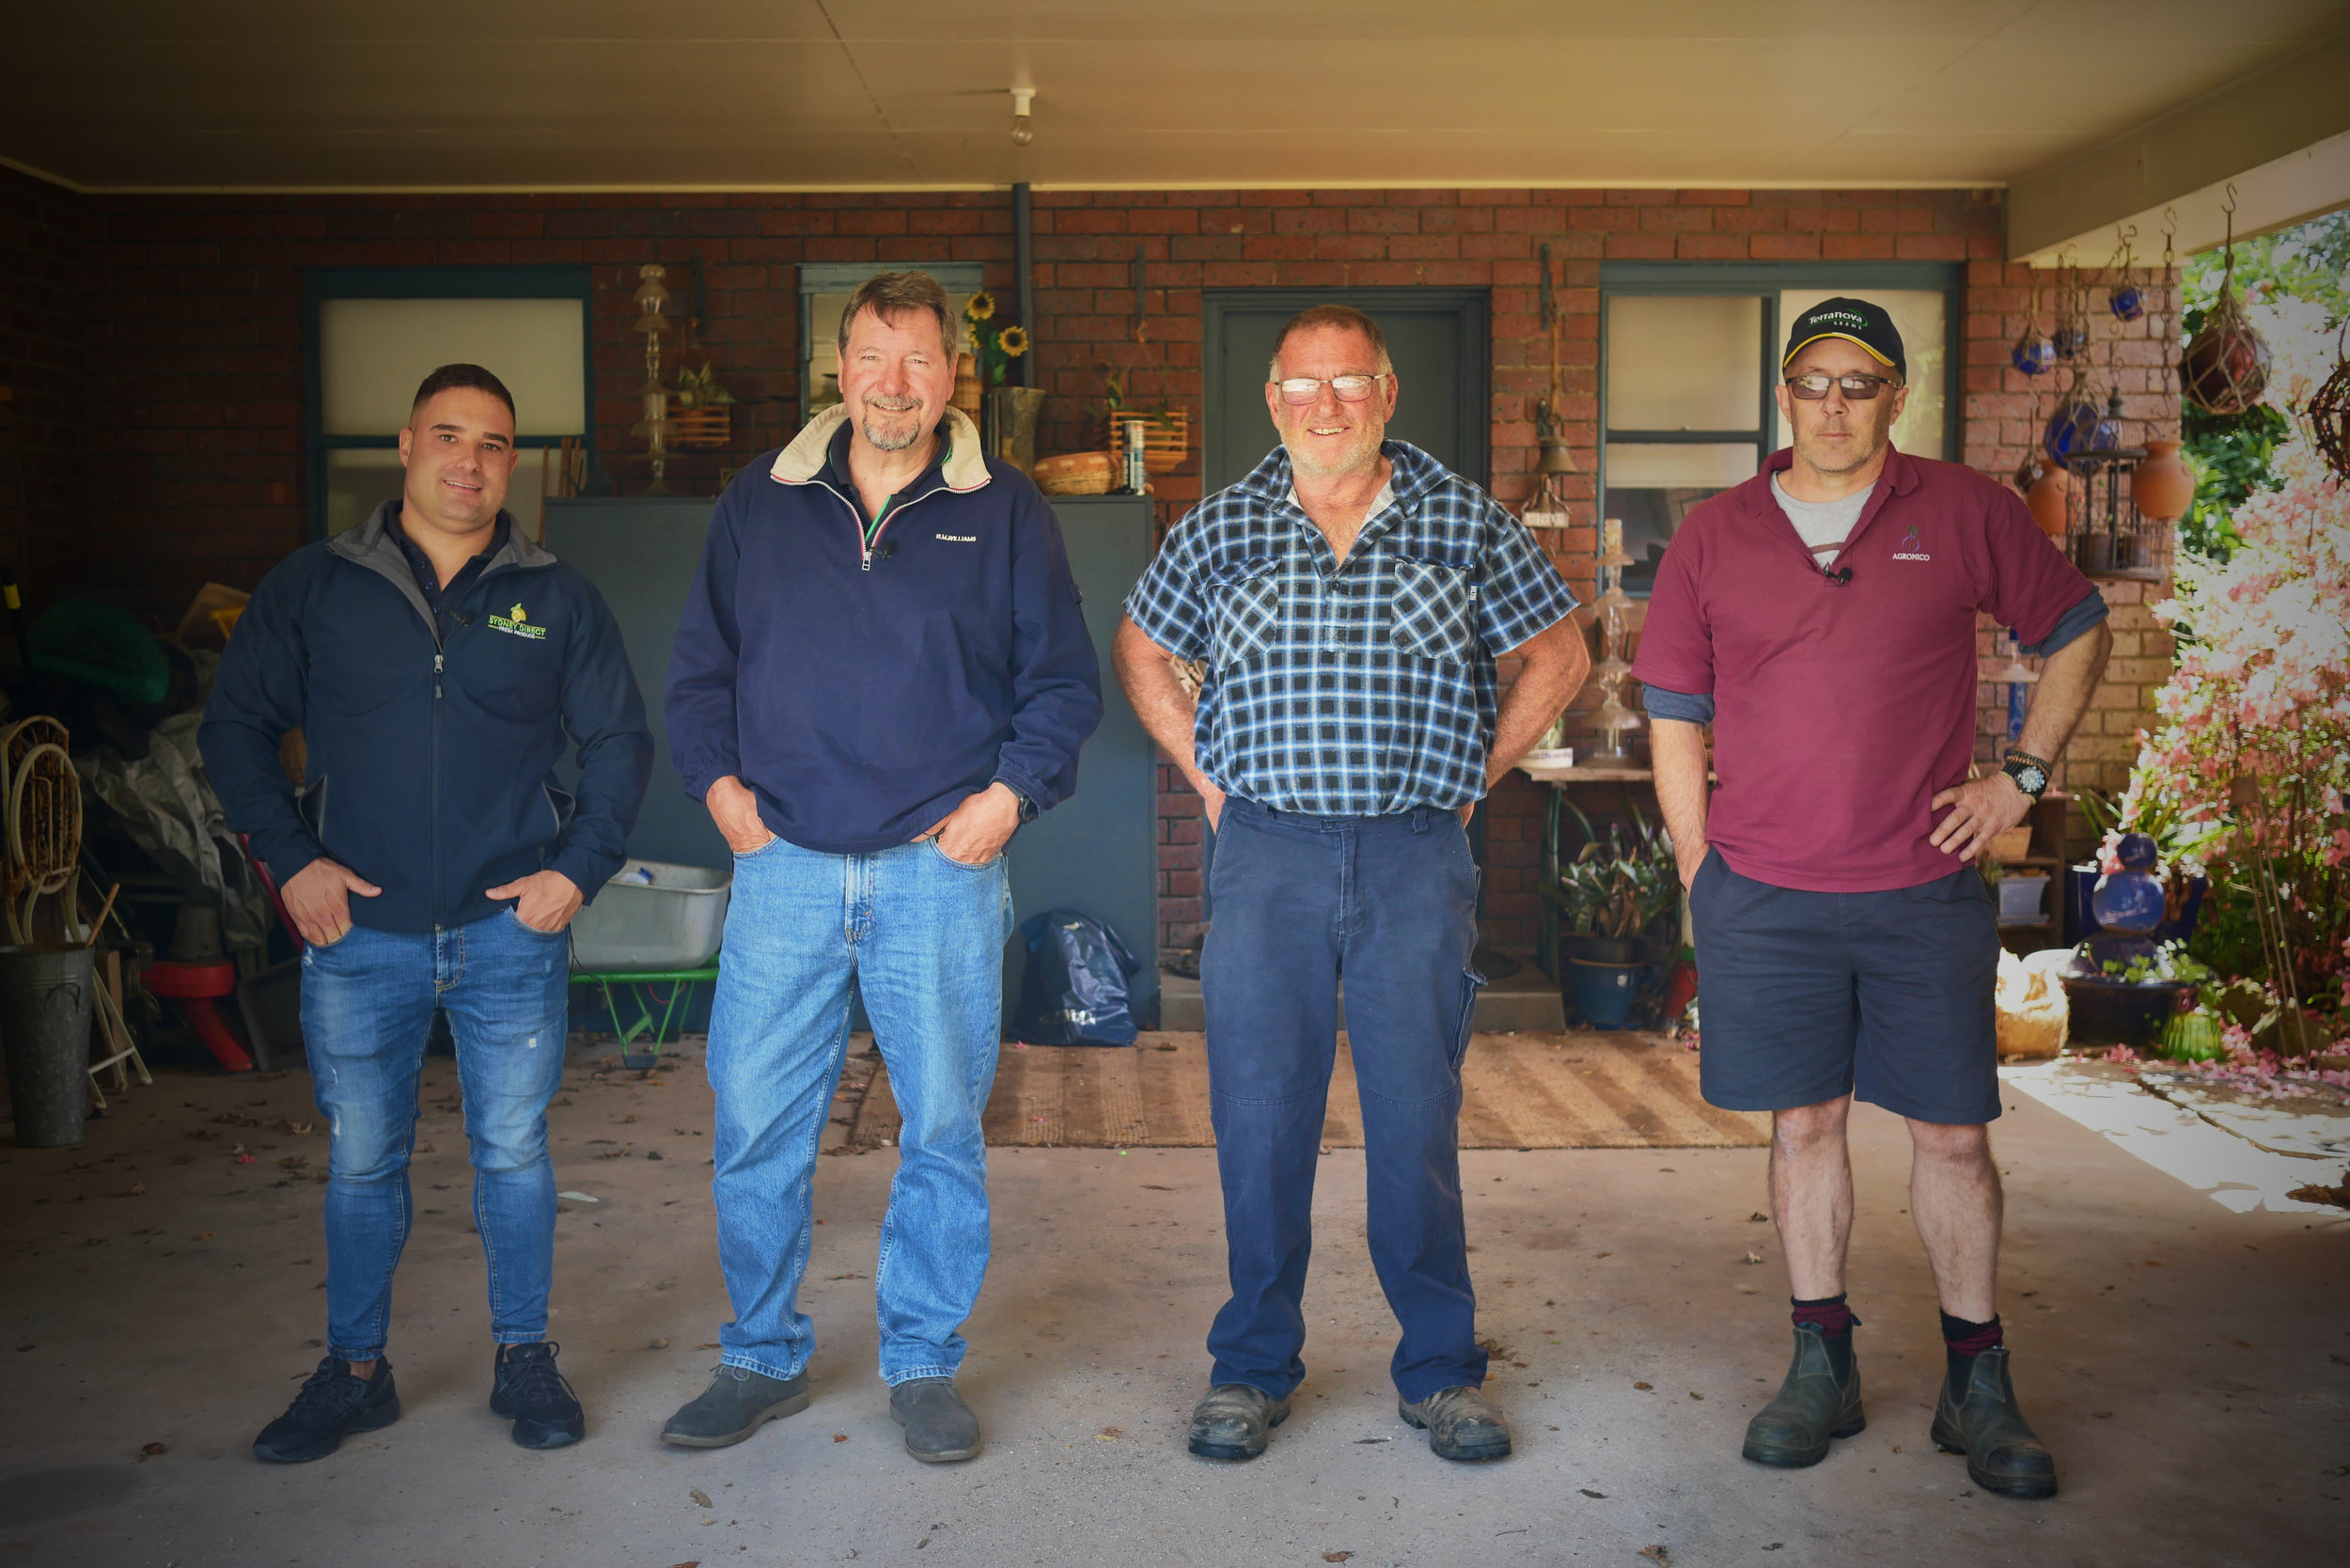 THE WHOLESALER, AGENT, GROWER AND AGRONOMIST